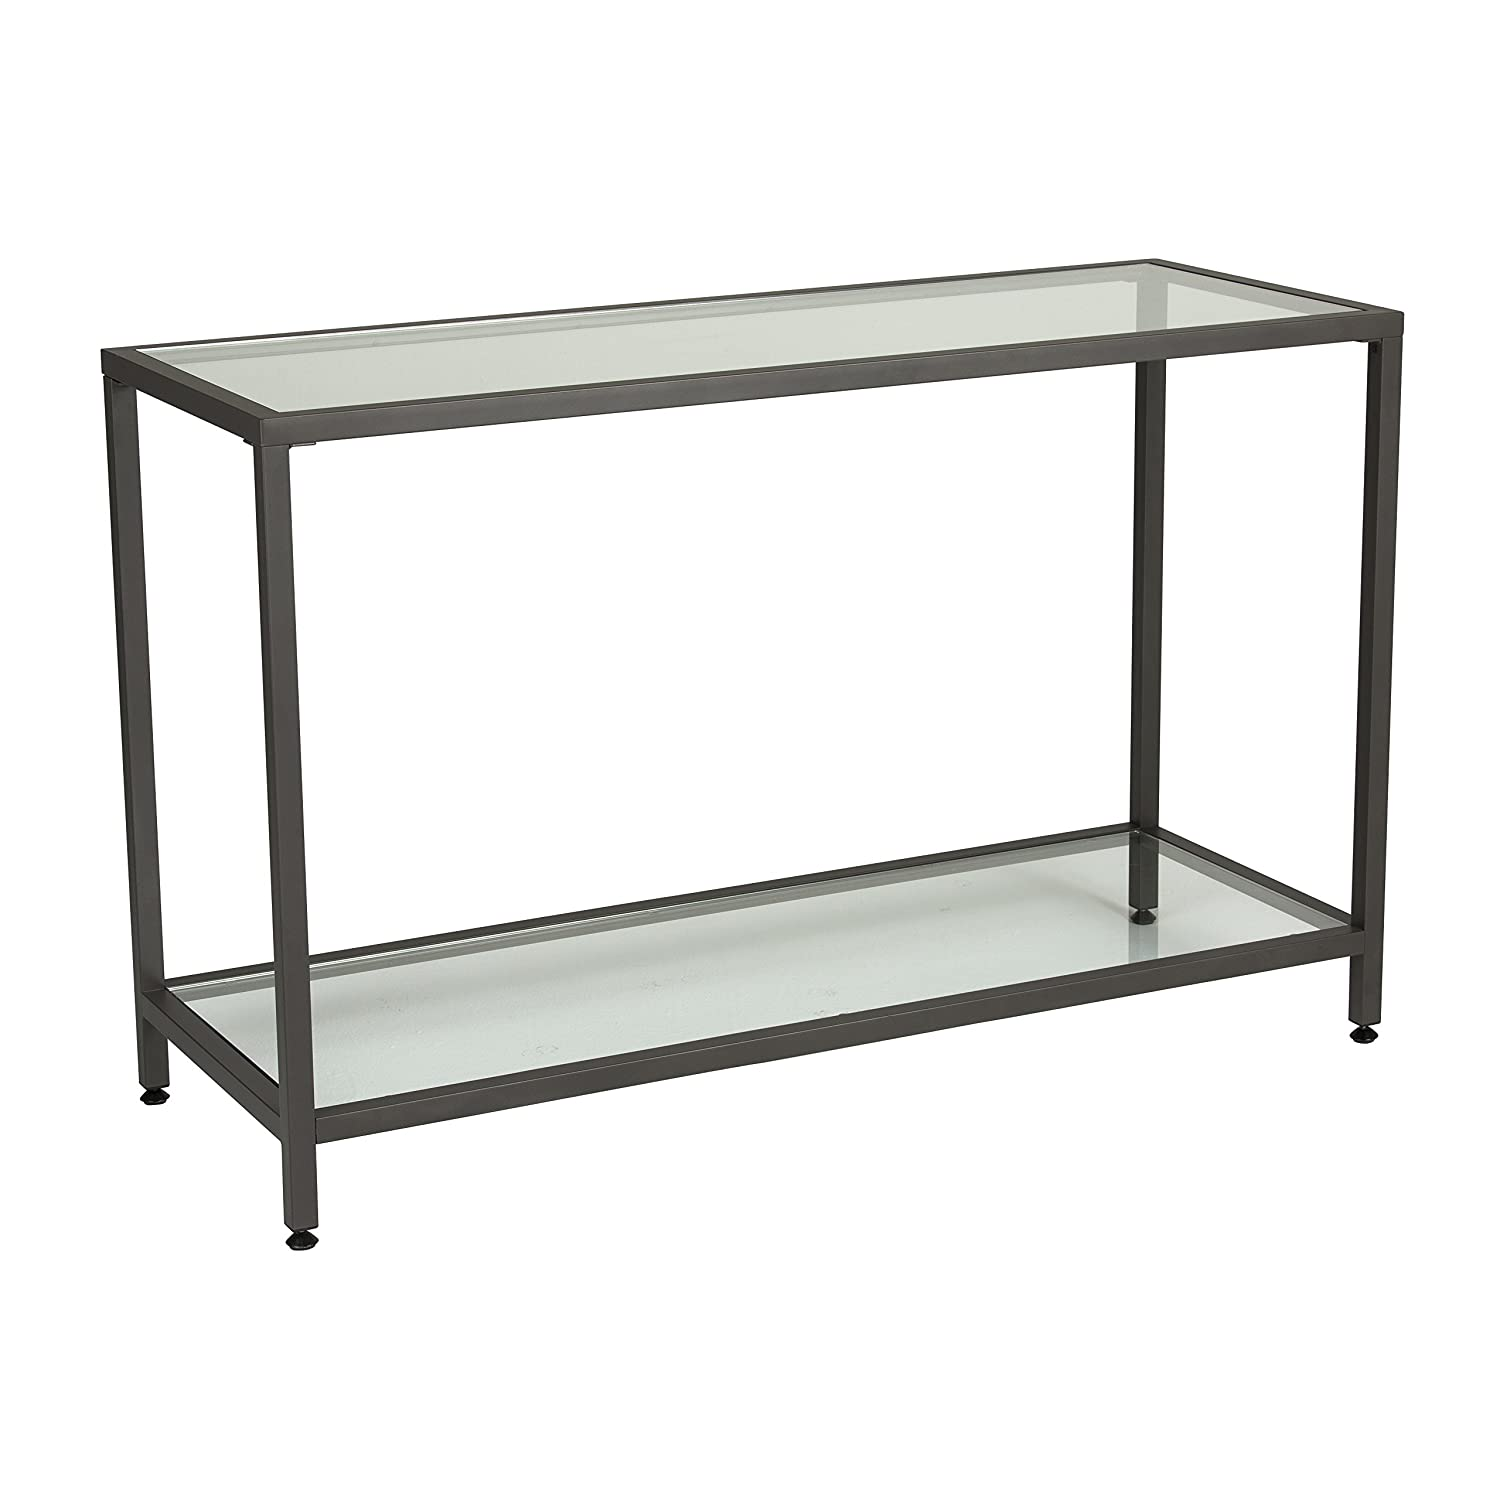 Amazon studio designs home 710010 camber console table in amazon studio designs home 710010 camber console table in pewter with clear glass kitchen dining geotapseo Gallery